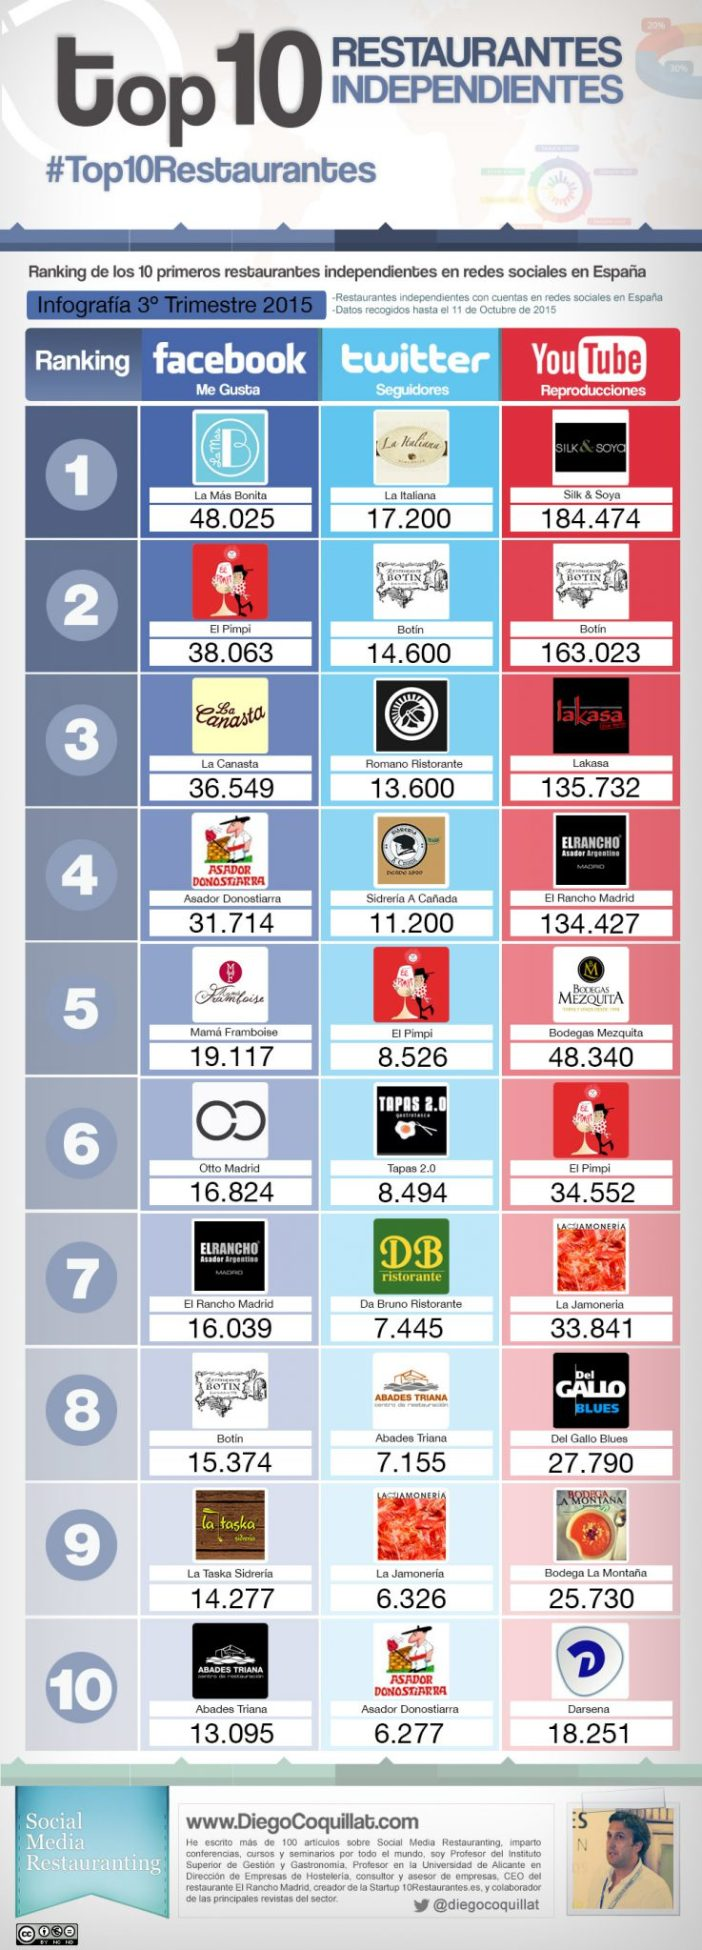 Infographic best independent restaurants in twitter, facebook and youtube in the third quarter 2015